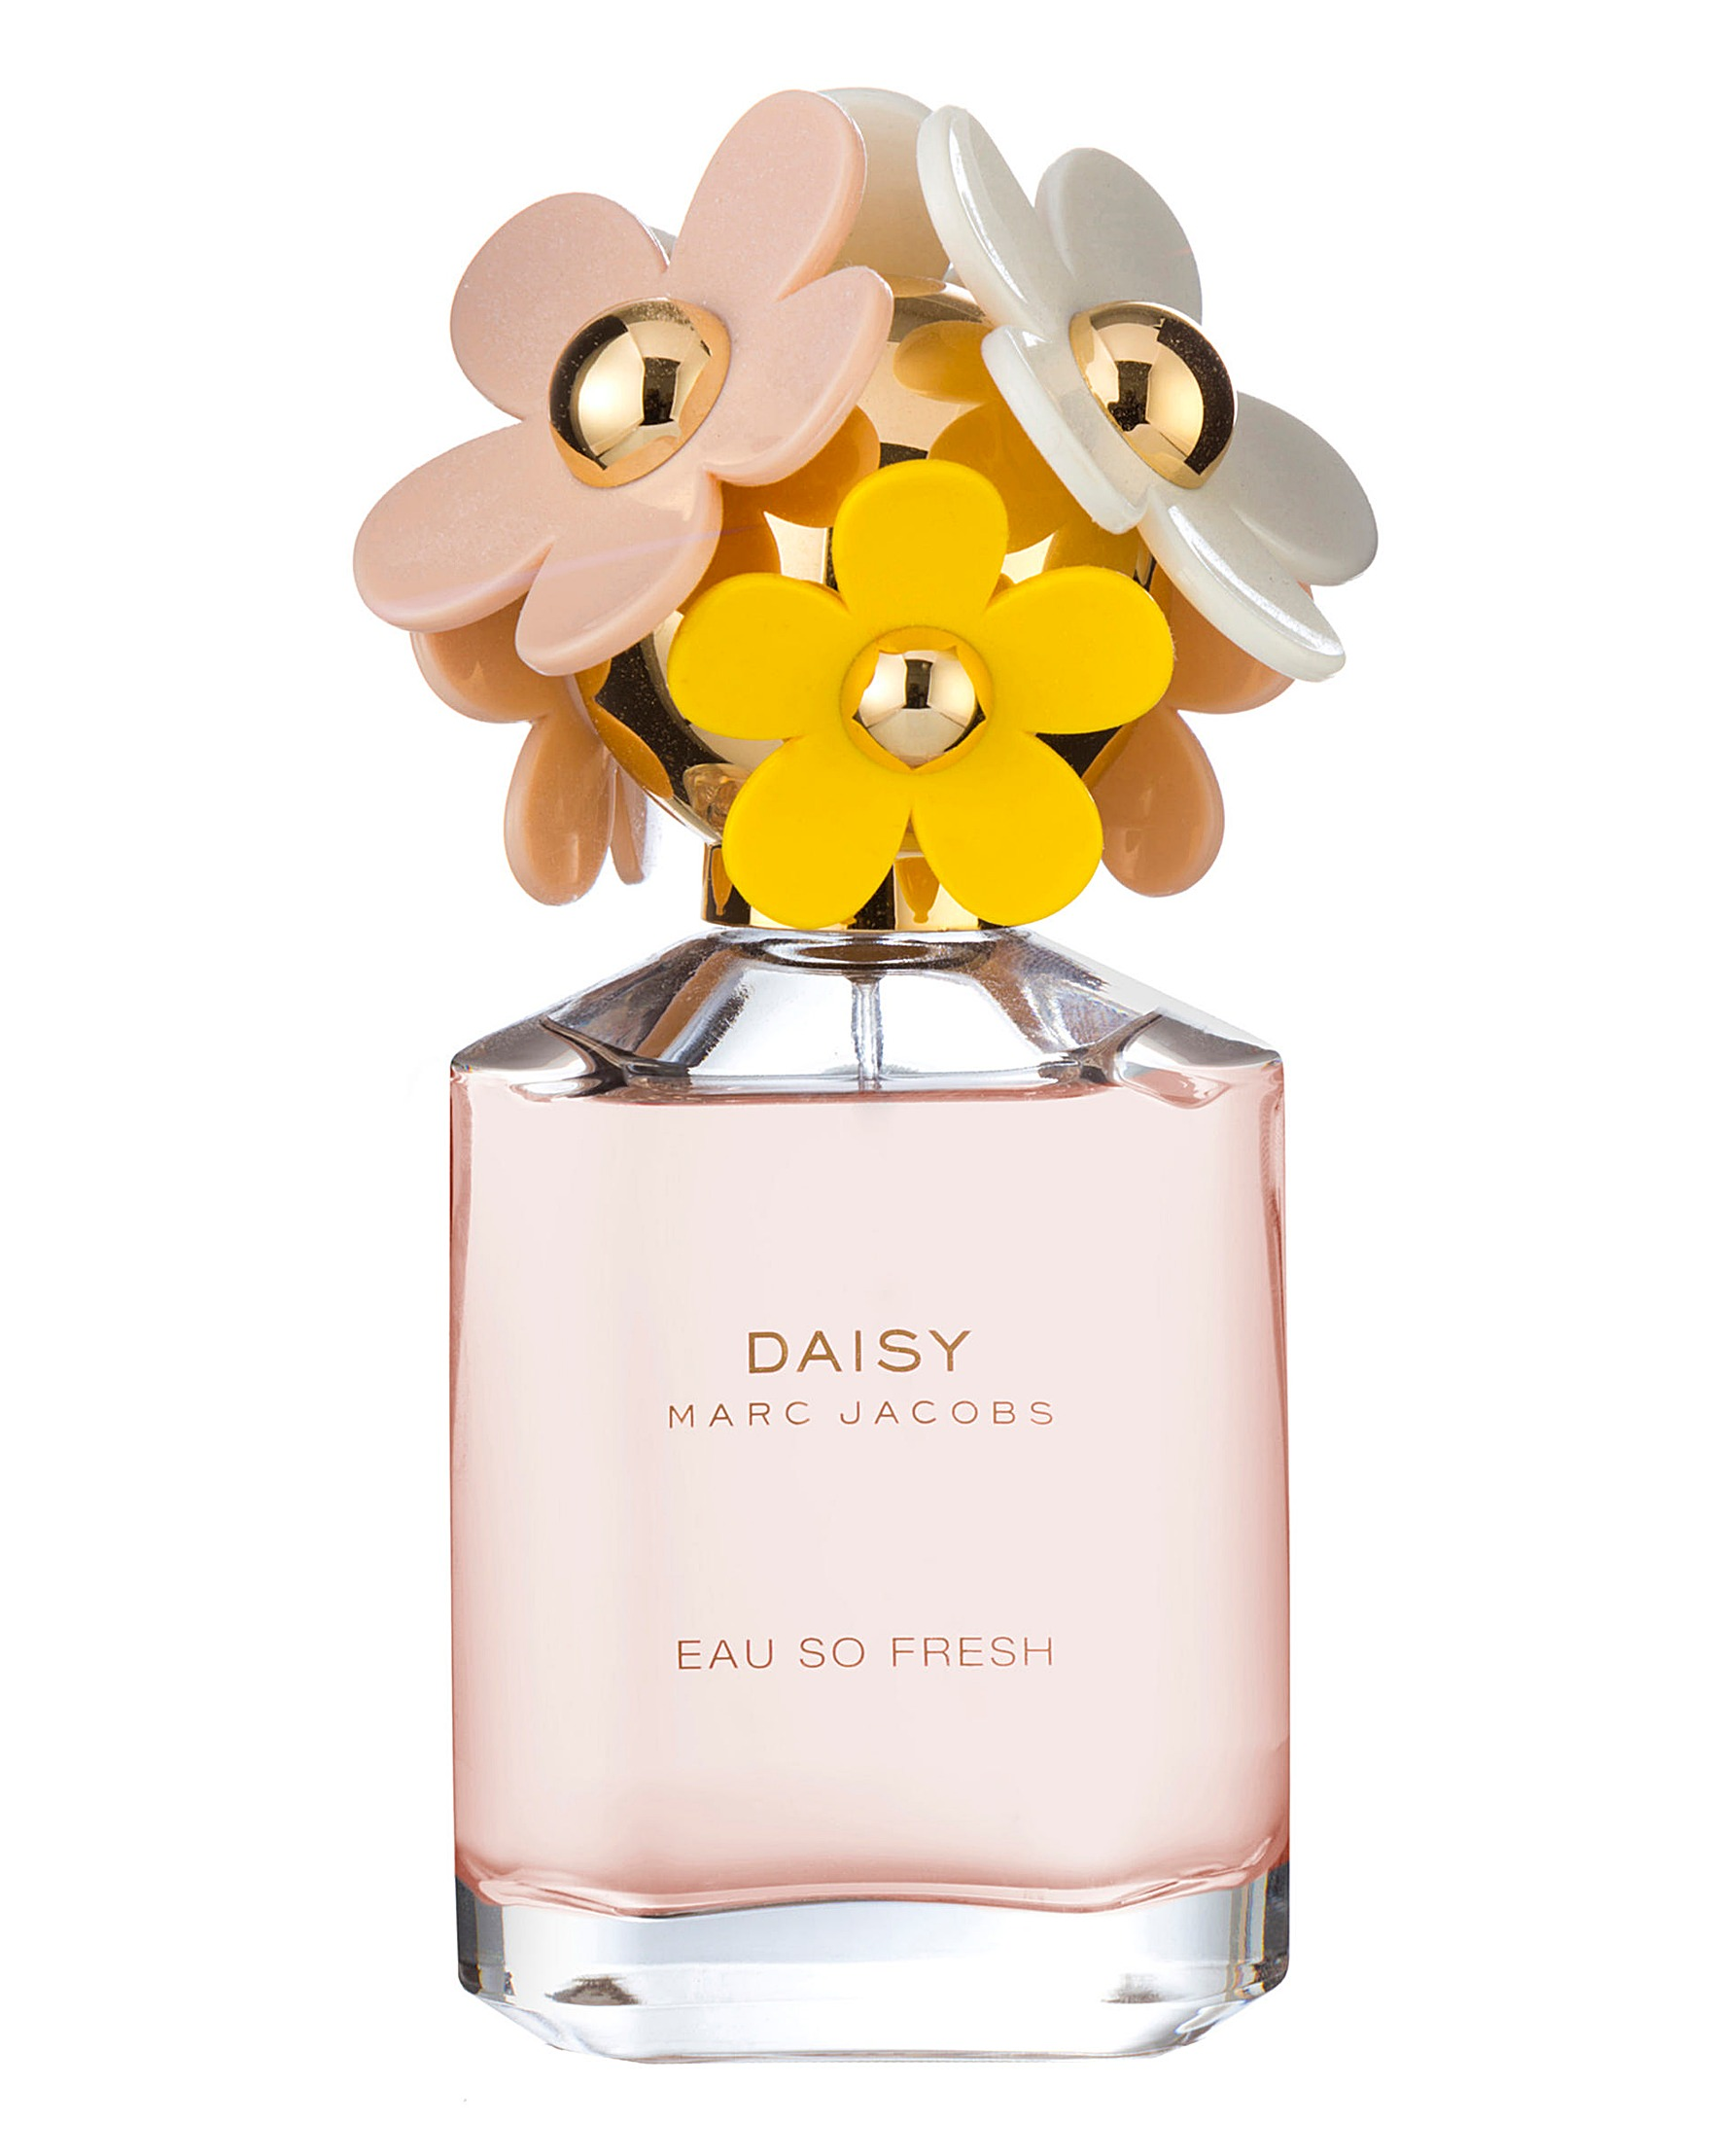 Marc jacobs daisy eau so fresh 75ml edt ambrose wilson izmirmasajfo